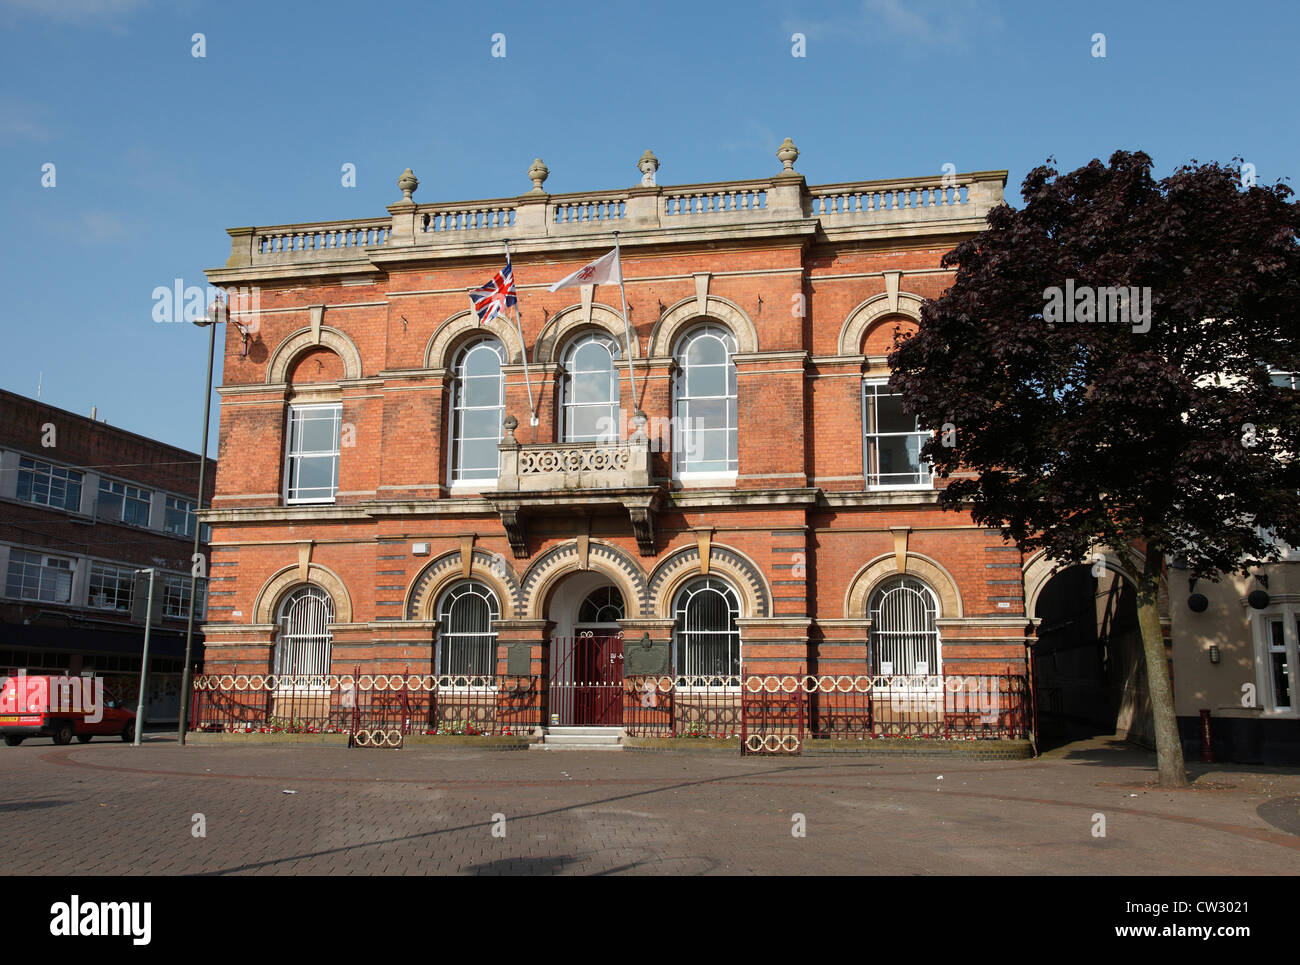 Ilkeston Town Hall, Ilkeston, Derbyshire, England, U.K. - Stock Image